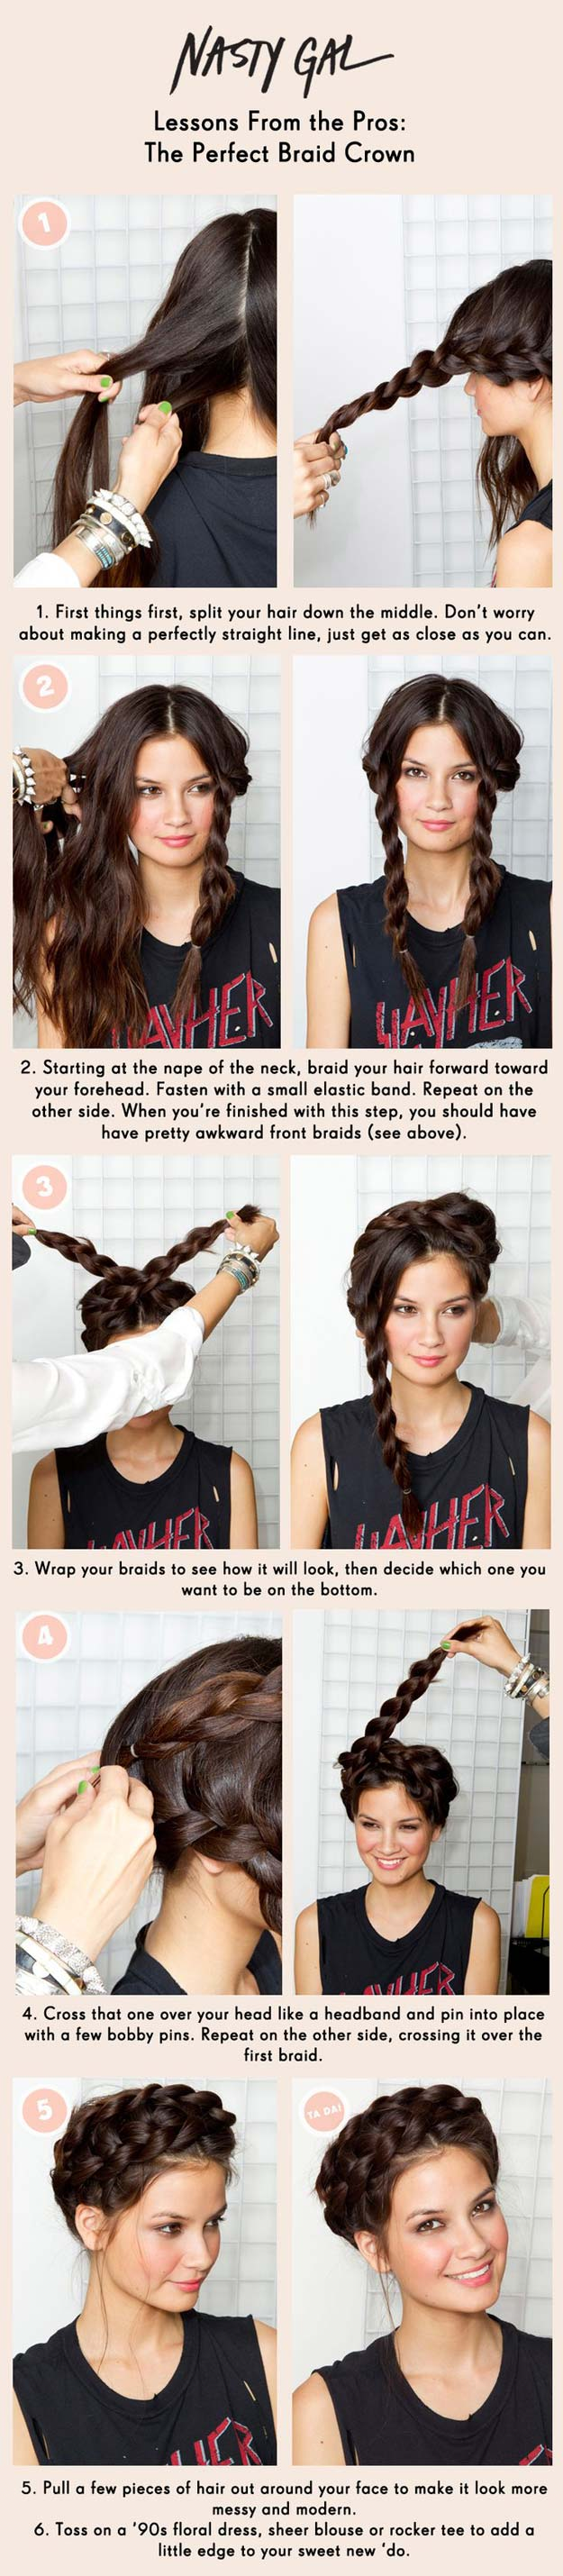 Cool and Easy DIY Hairstyles - Braid Crown - Quick and Easy Ideas for Back to School Styles for Medium, Short and Long Hair - Fun Tips and Best Step by Step Tutorials for Teens, Prom, Weddings, Special Occasions and Work. Up dos, Braids, Top Knots and Buns, Super Summer Looks #hairstyles #hair #teens #easyhairstyles #diy #beauty